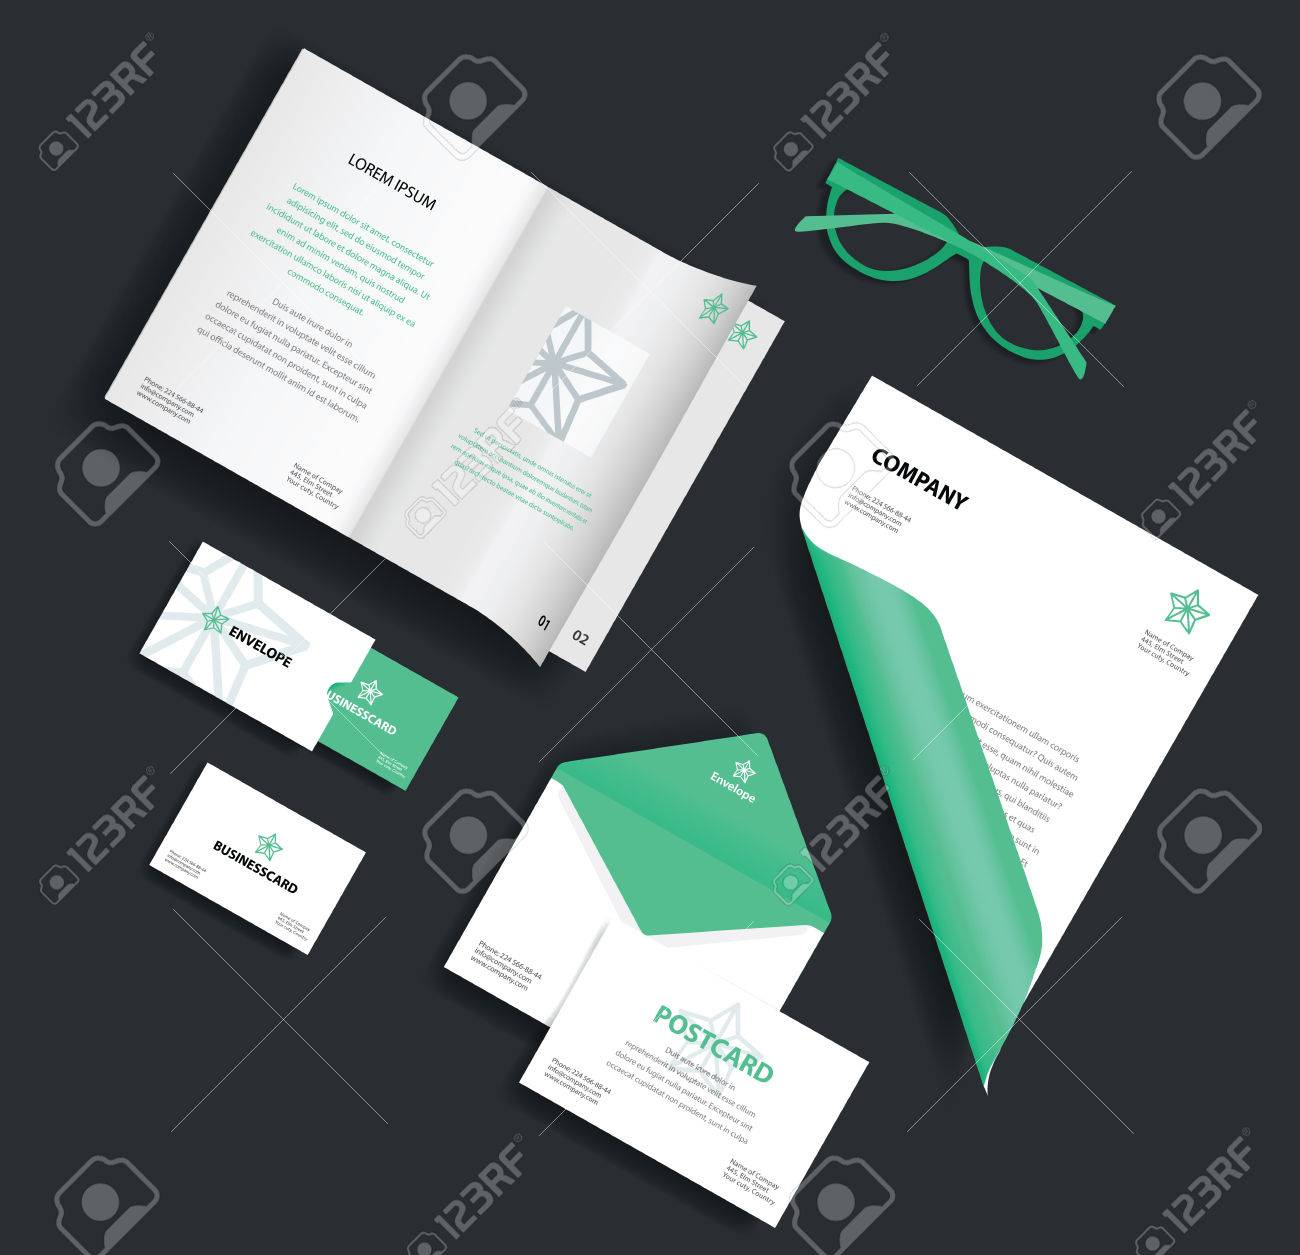 Corporate identity template vector company style for brand book vector company style for brand book and guideline envelope business reheart Image collections